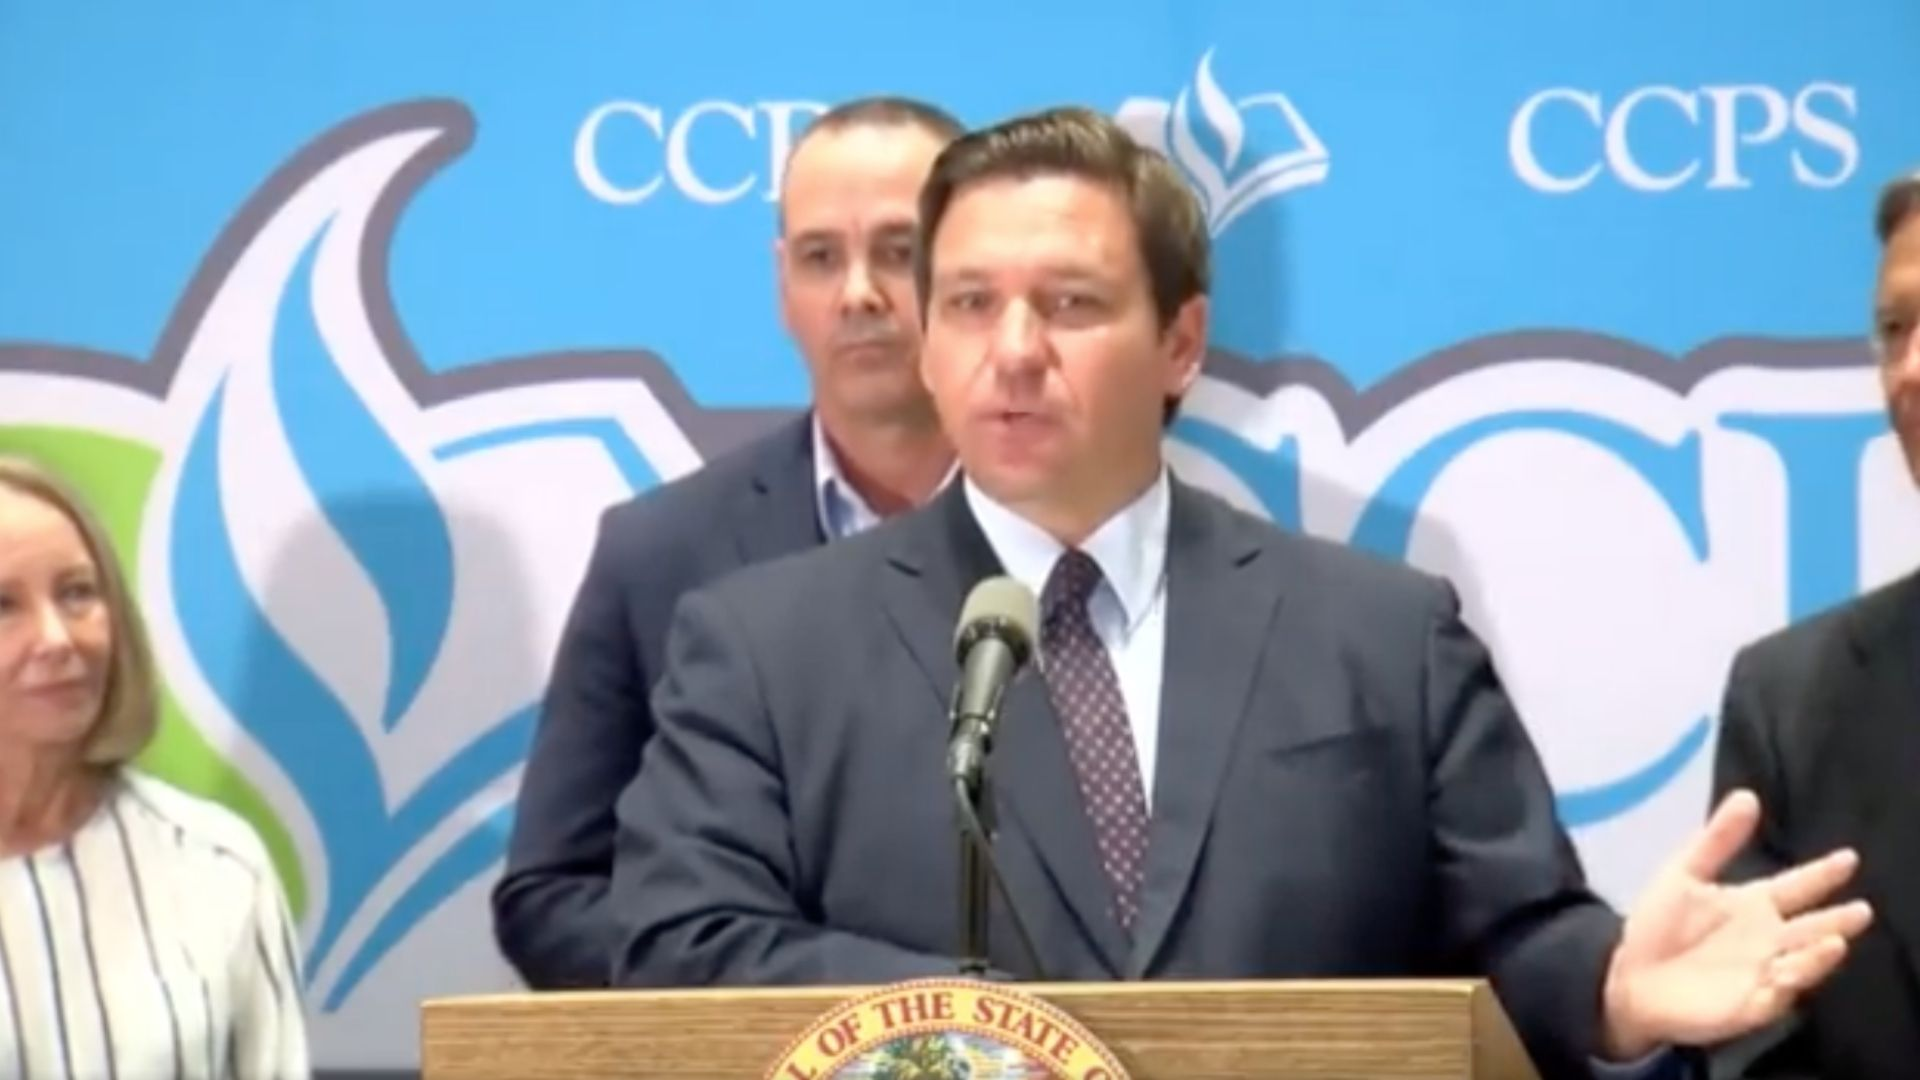 DeSantis Calls Inflation 'An Invisible Tax On The American People'